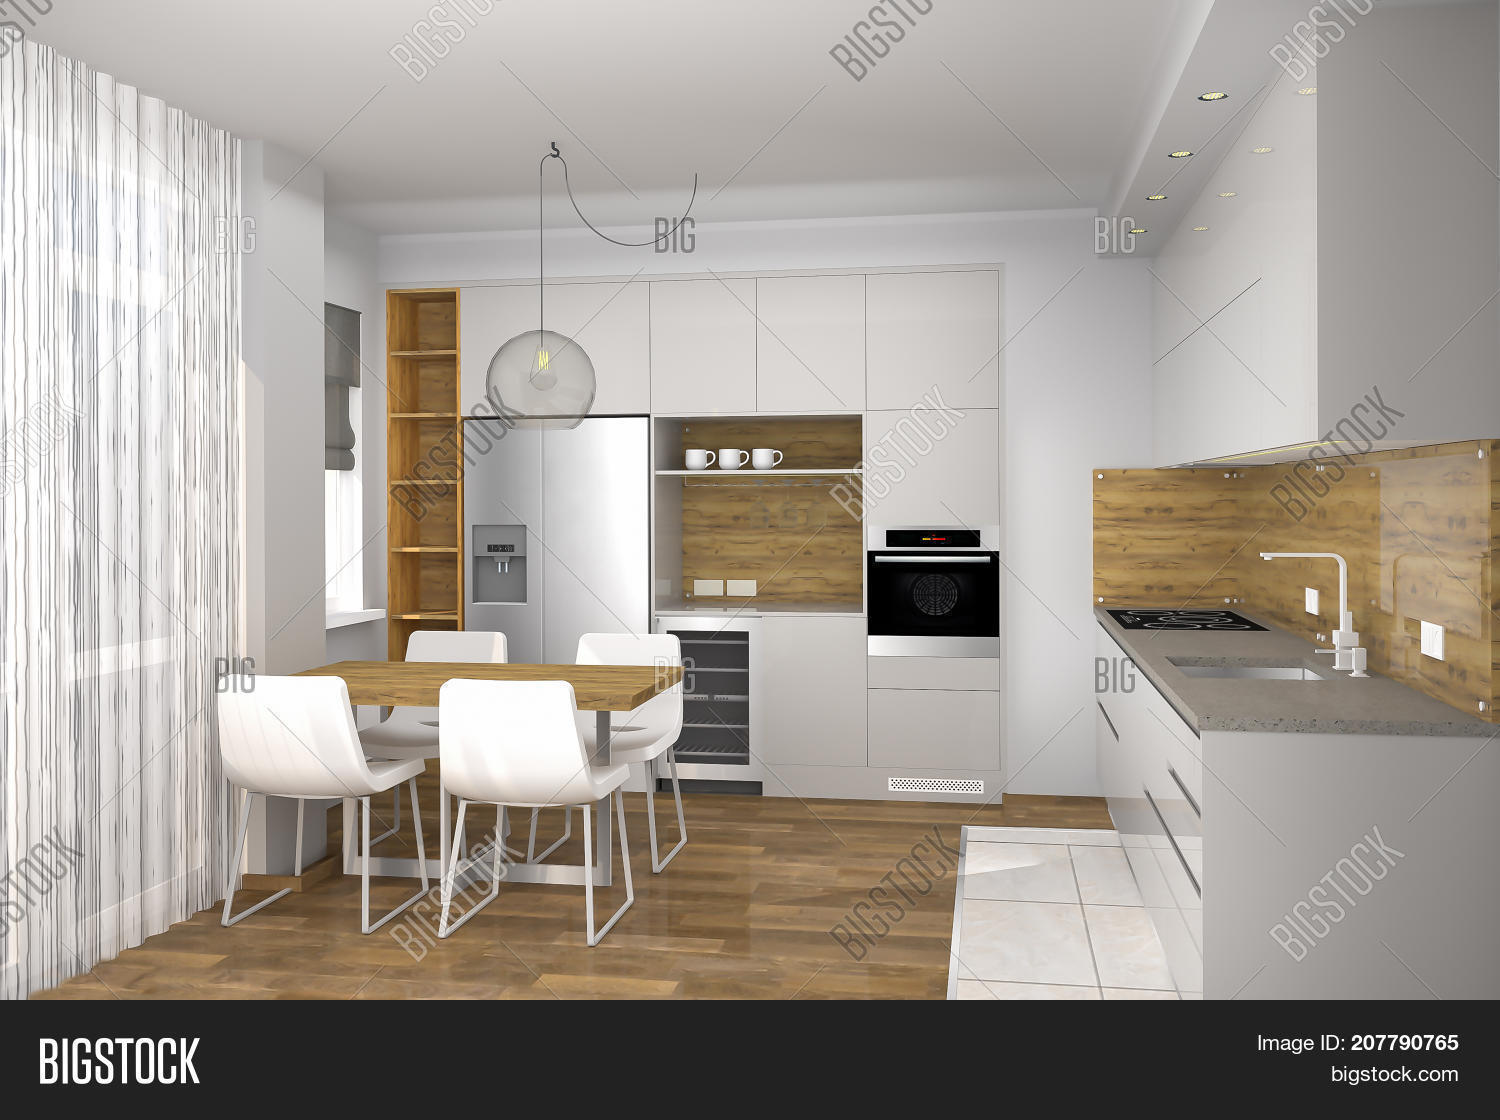 Kitchen Design Software Free Trial